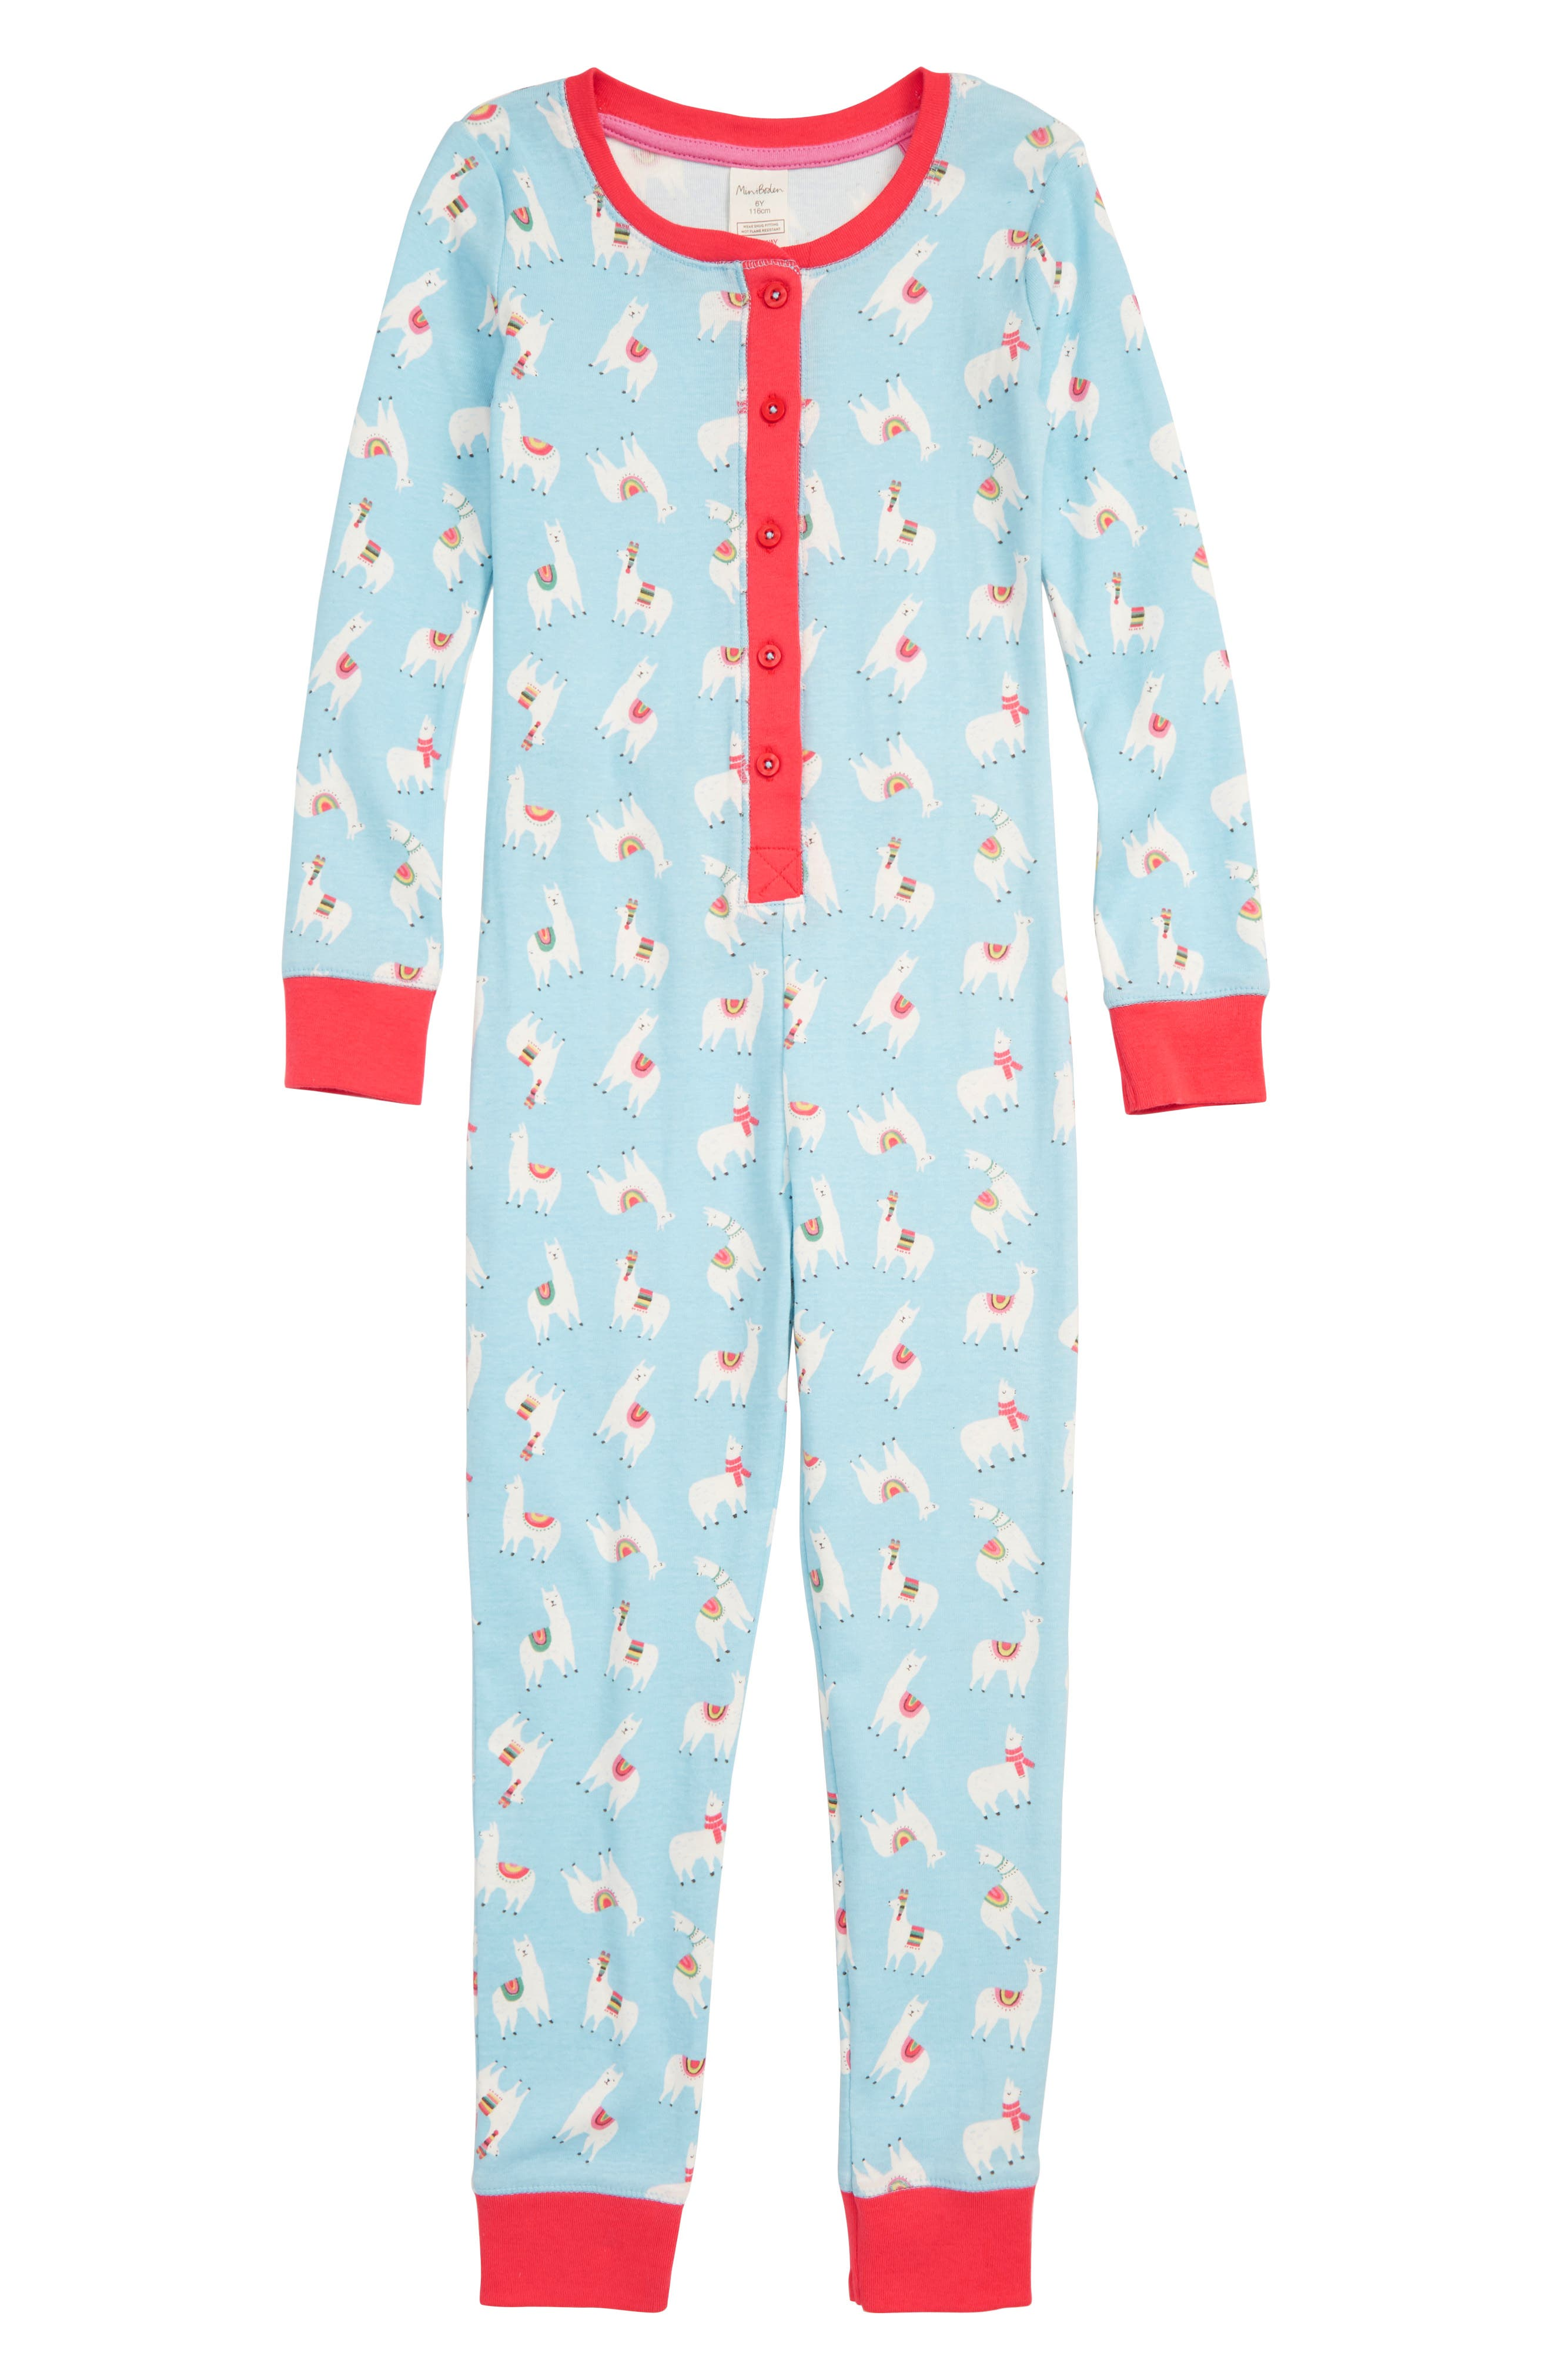 Fitted Cosy All in One Pajamas,                             Main thumbnail 1, color,                             BLU ICE BLUE LLAMAS